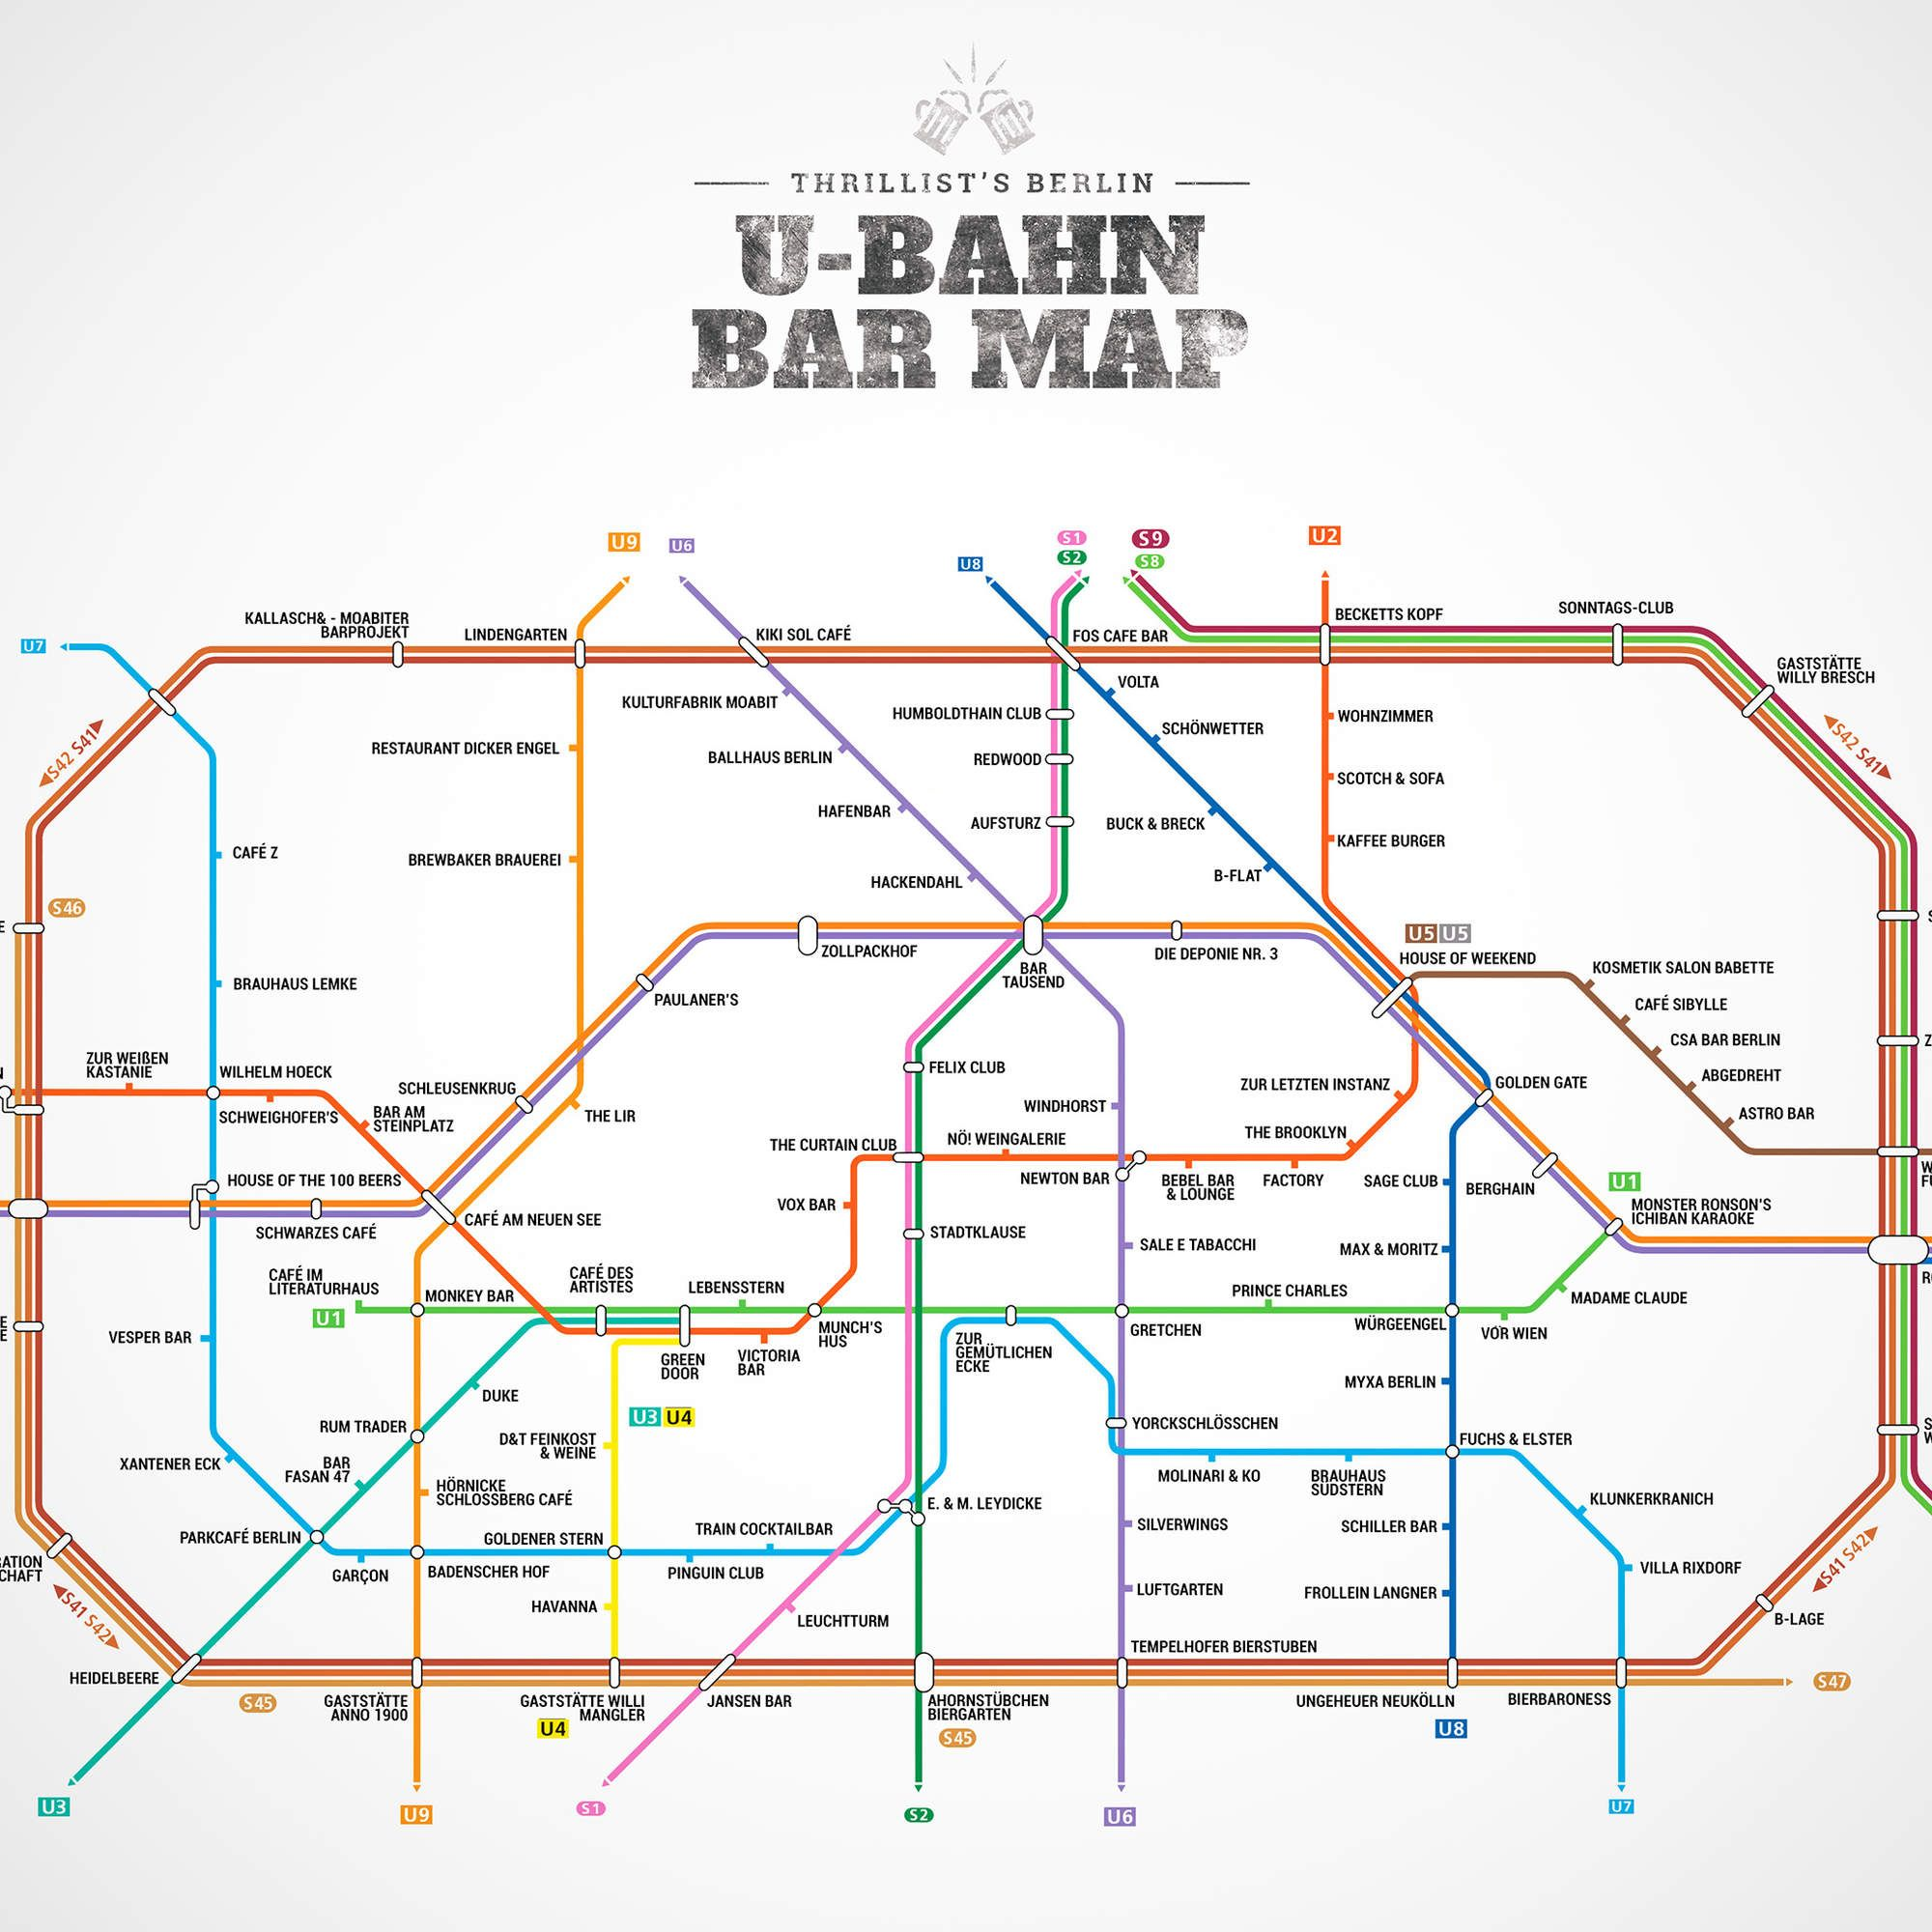 Berlins firstever UBahn Bar Map Bar Munich and Berlin berlin